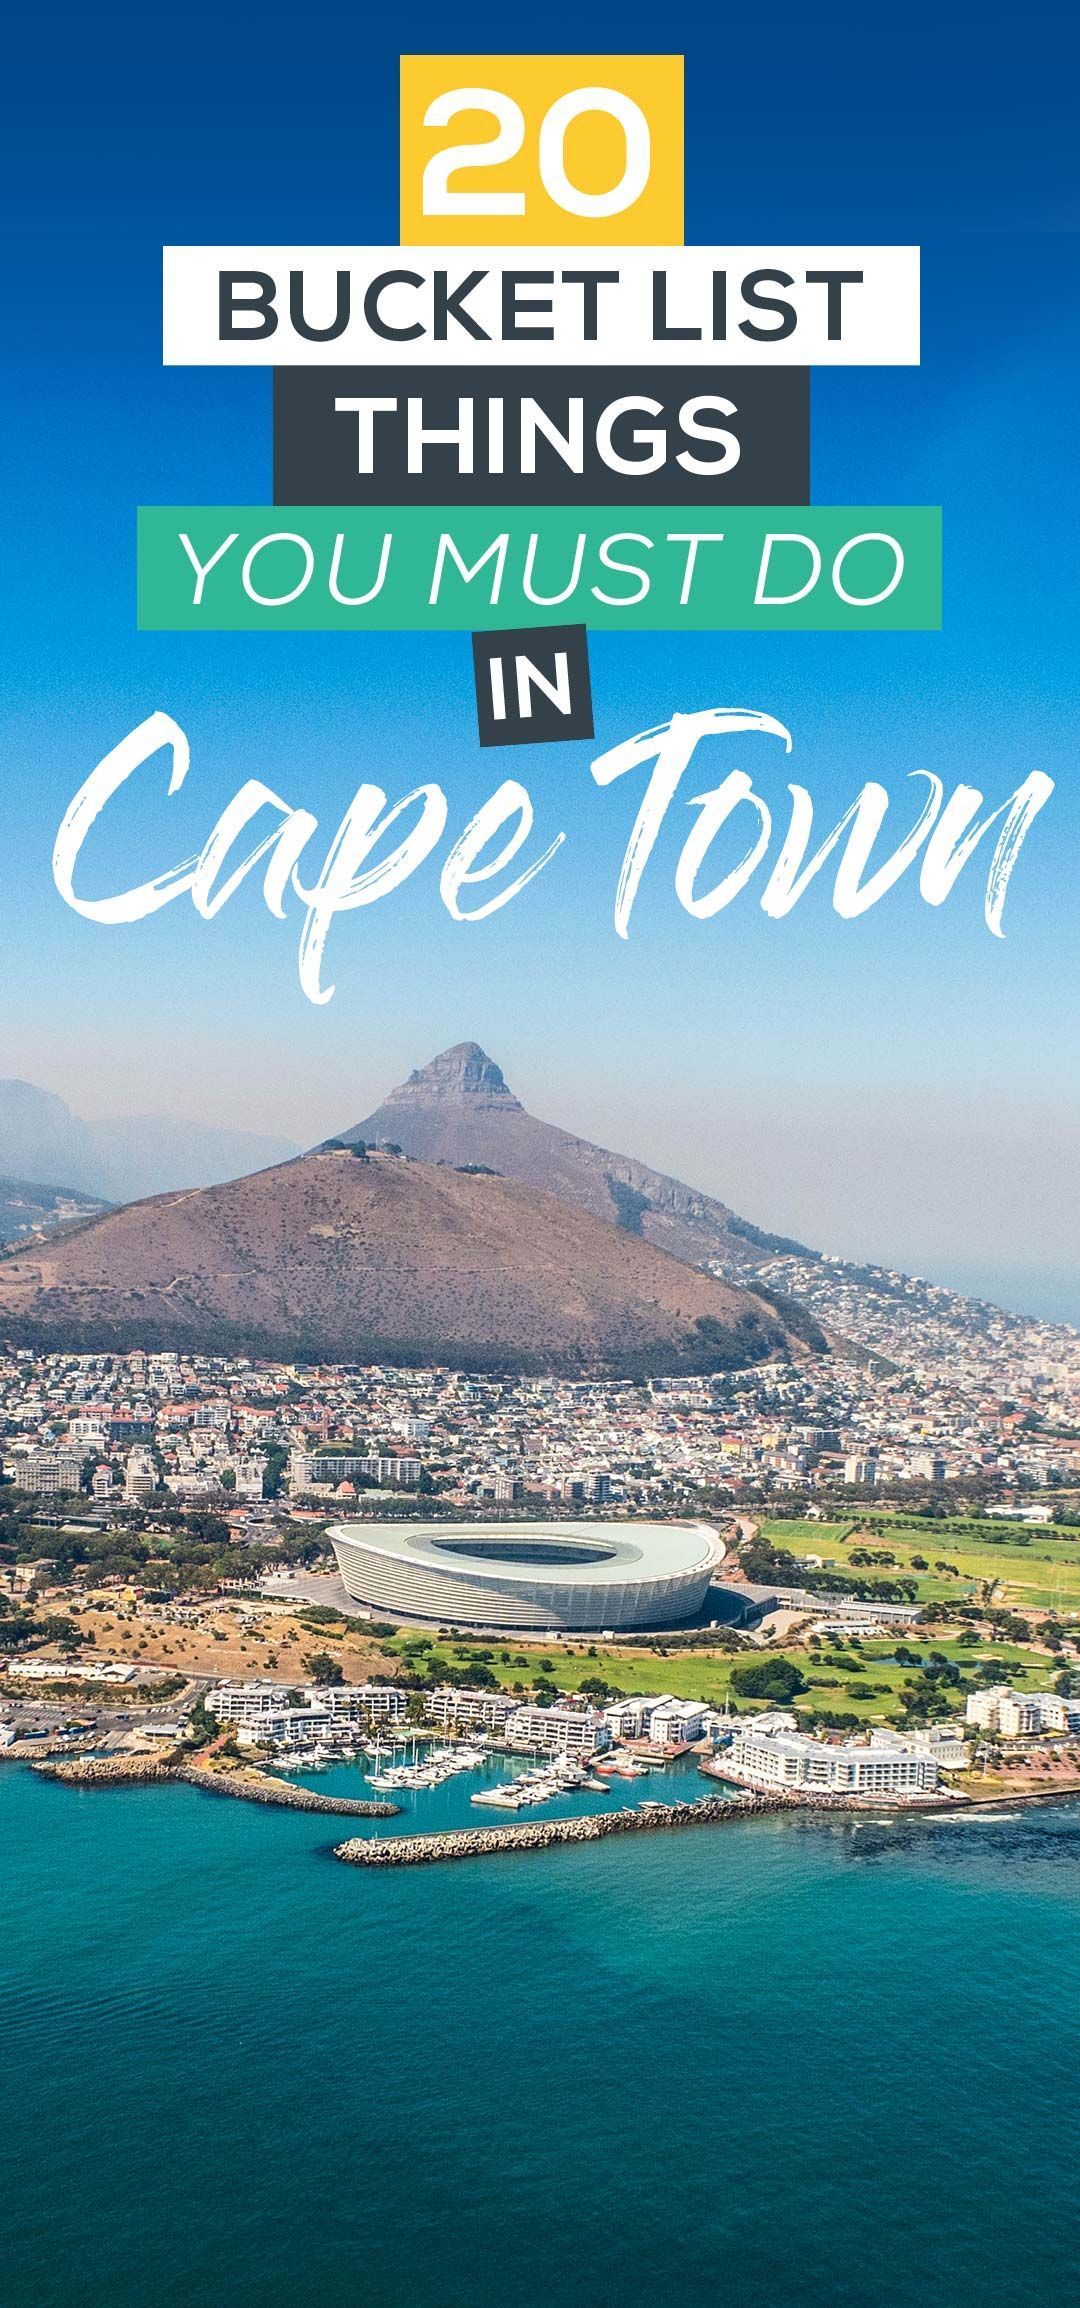 Top 20 Bucket List Things To Do In Cape Town And Beyond